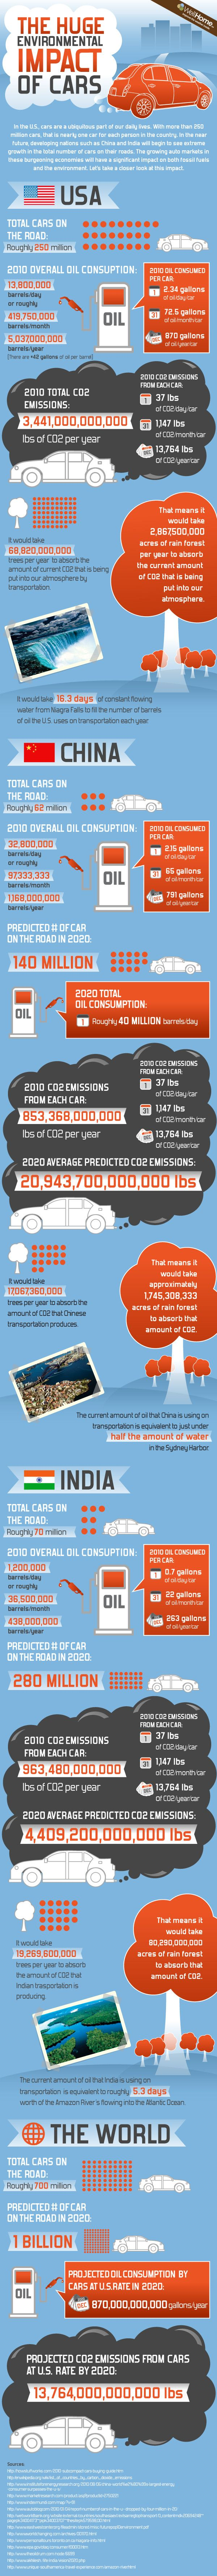 Environmental Impact of Cars #cars #co2 #infographic